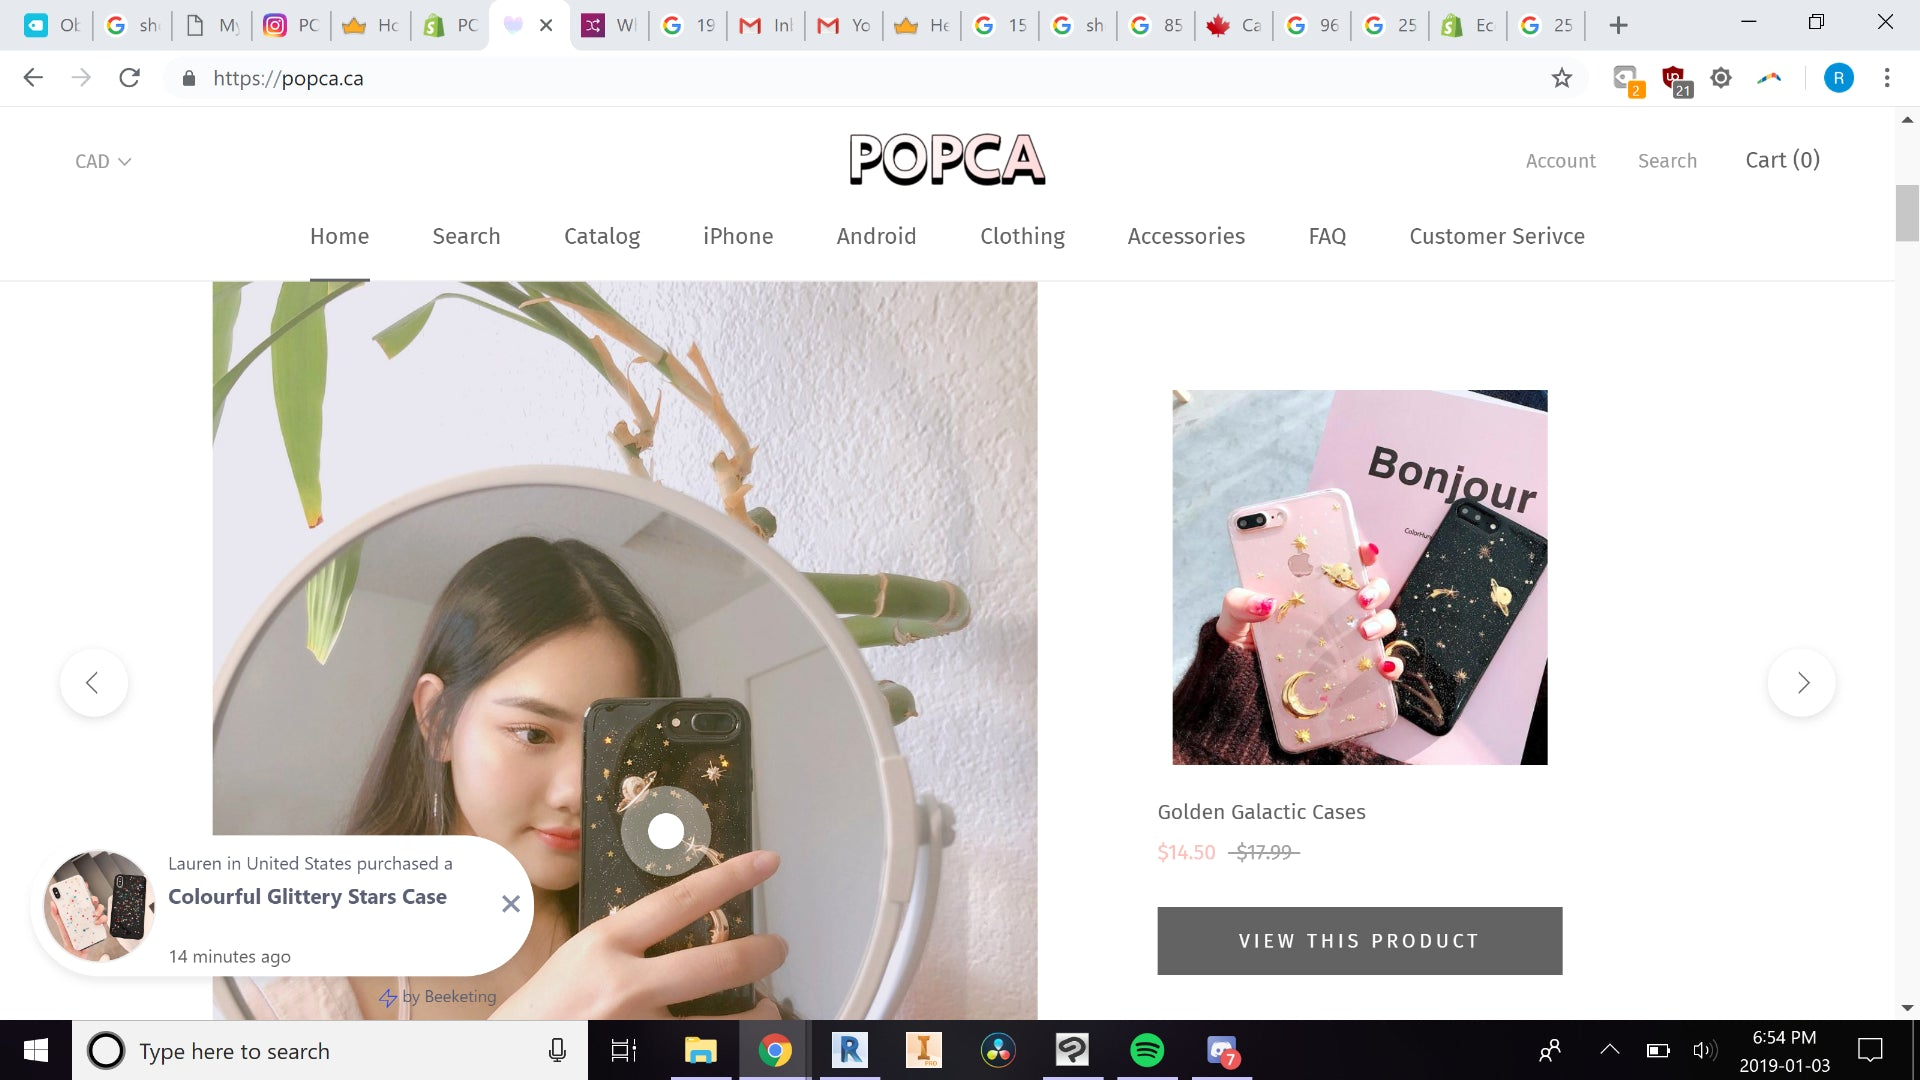 POPCA.ca (Aesthetic & Well Branded Dropshipping) Screenshot - 4